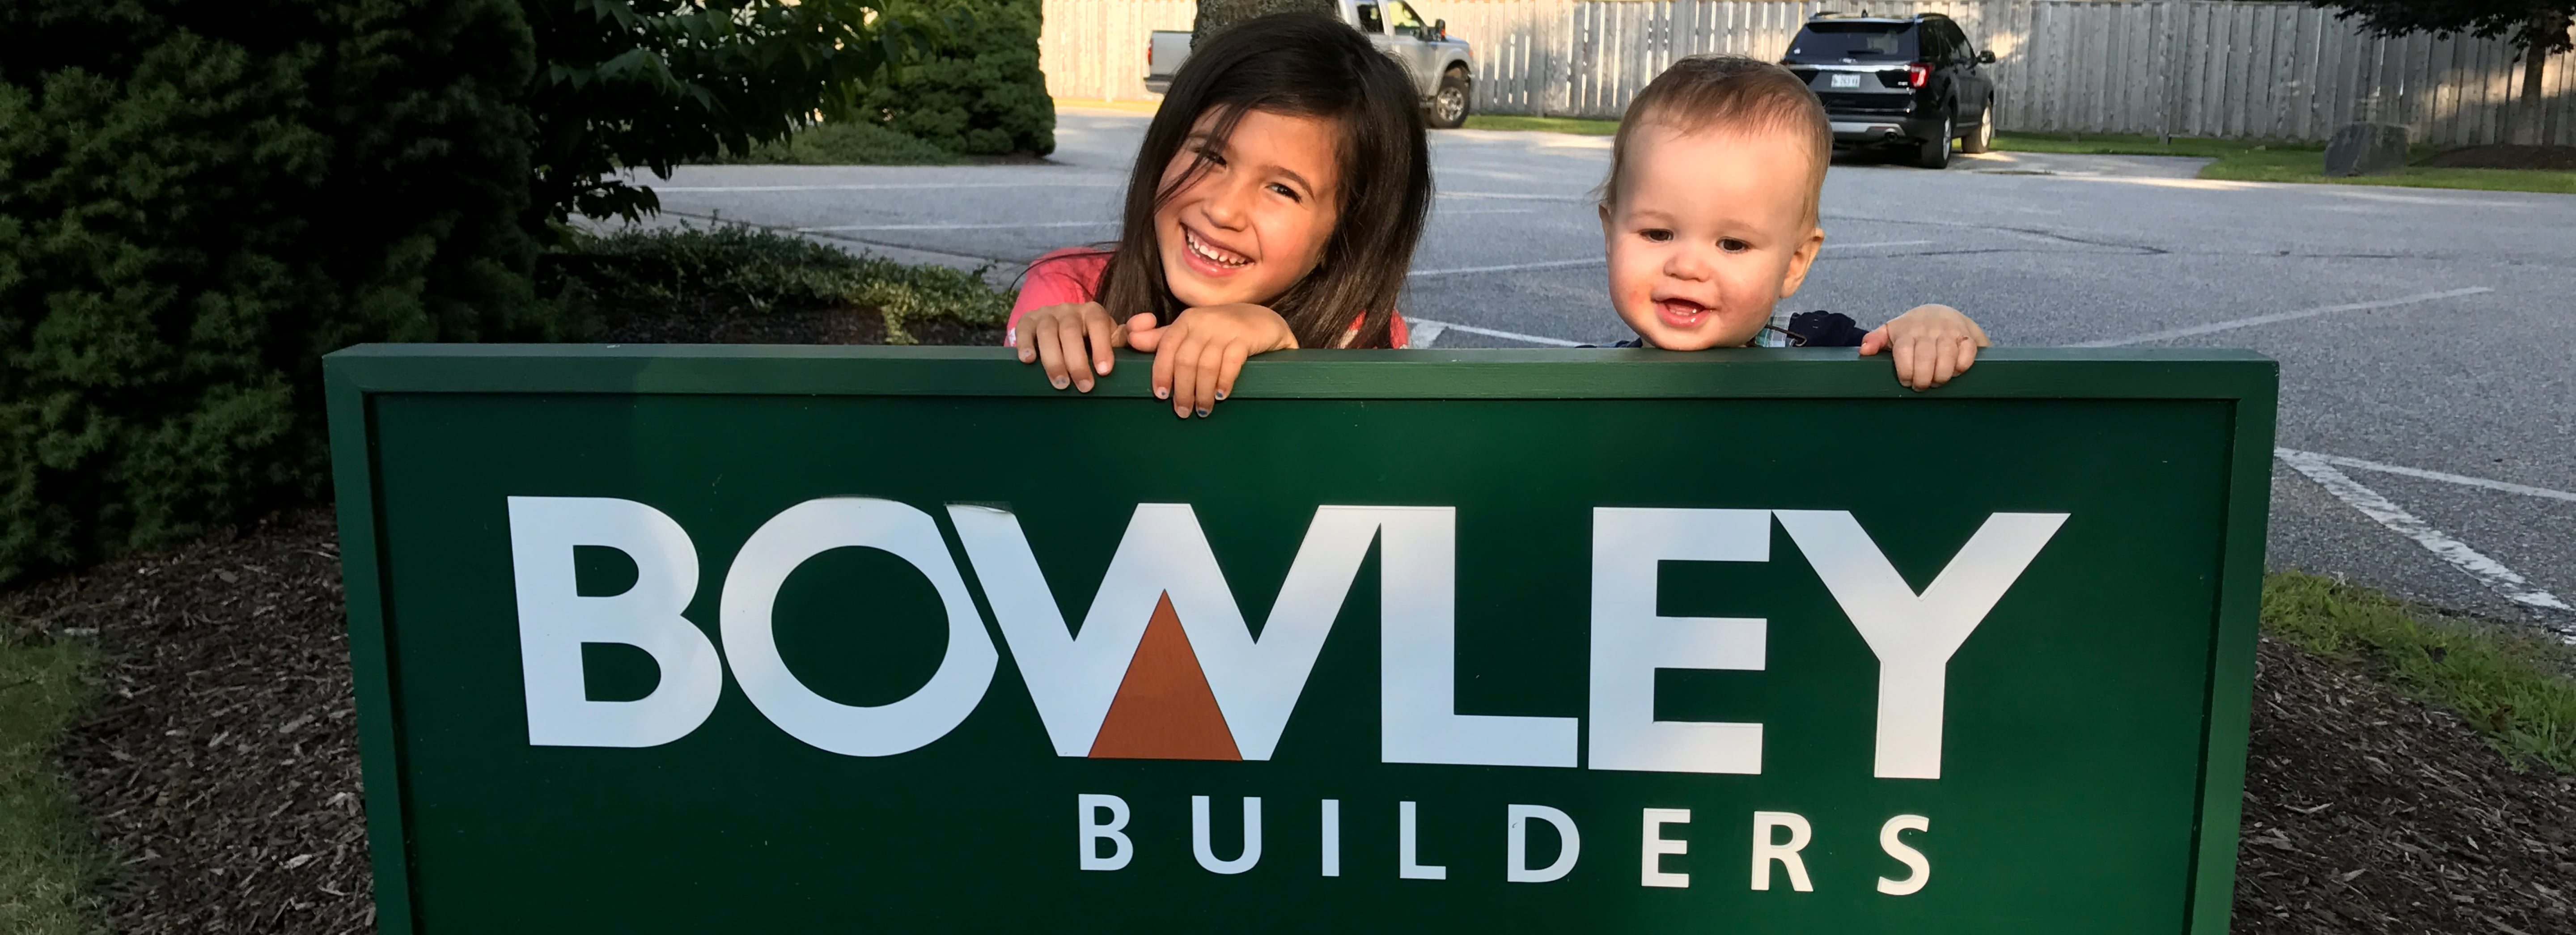 Two children hanging on a Bowley Builders sign